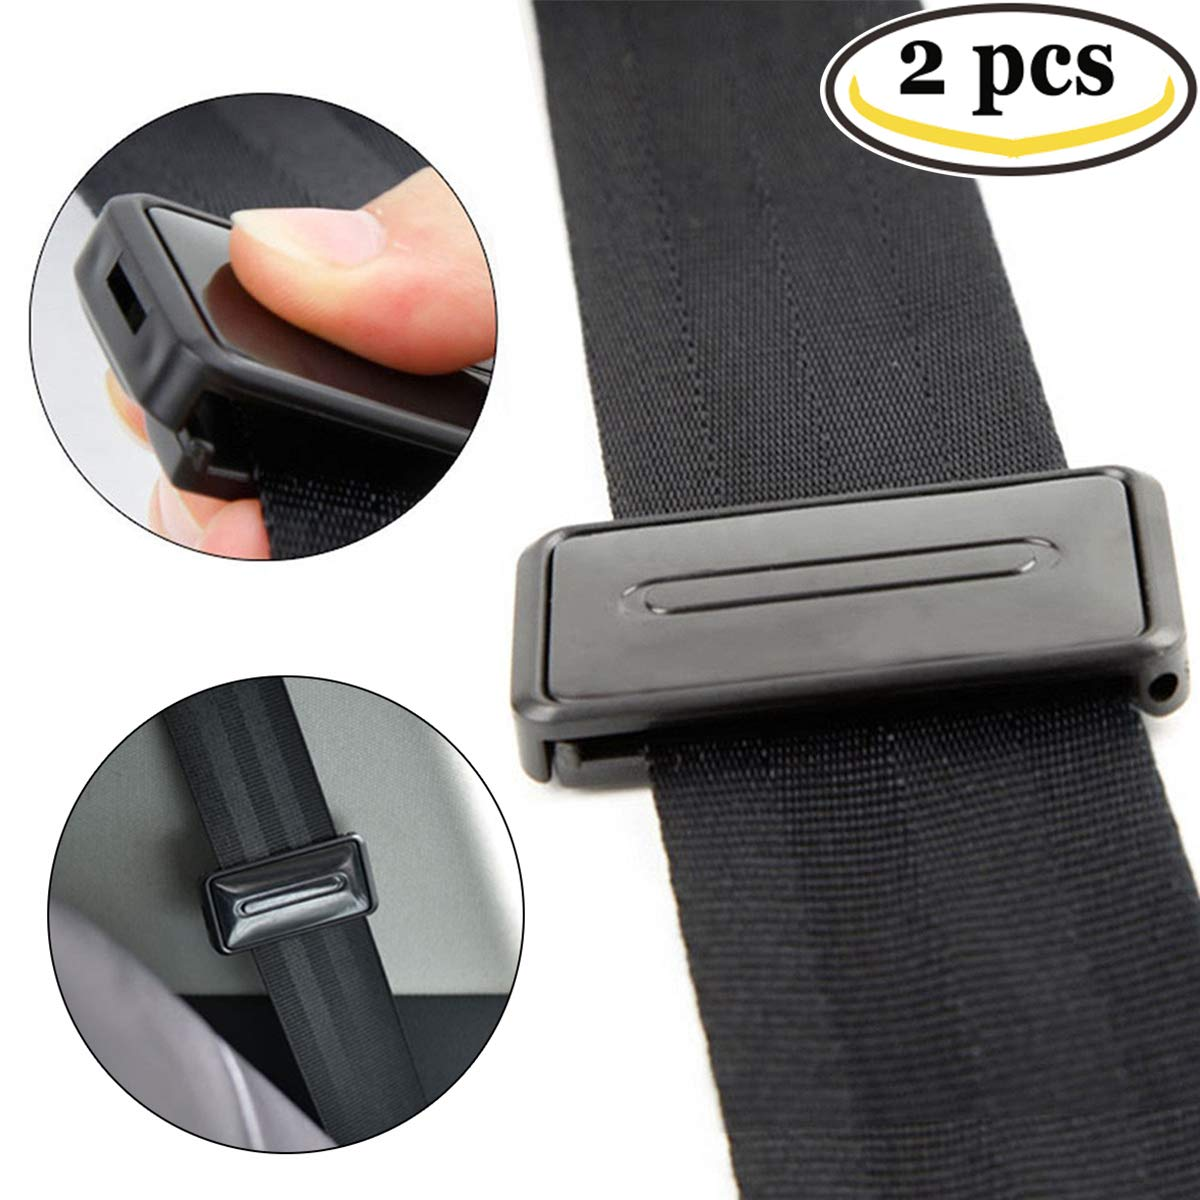 Ansblue Car Seat Belt Adjuster, Seatbelt Clips, Smart Adjust Seat Belts to Relax Shoulder Neck Give You a Comfortable and Safe Experience - 2PCS / Black